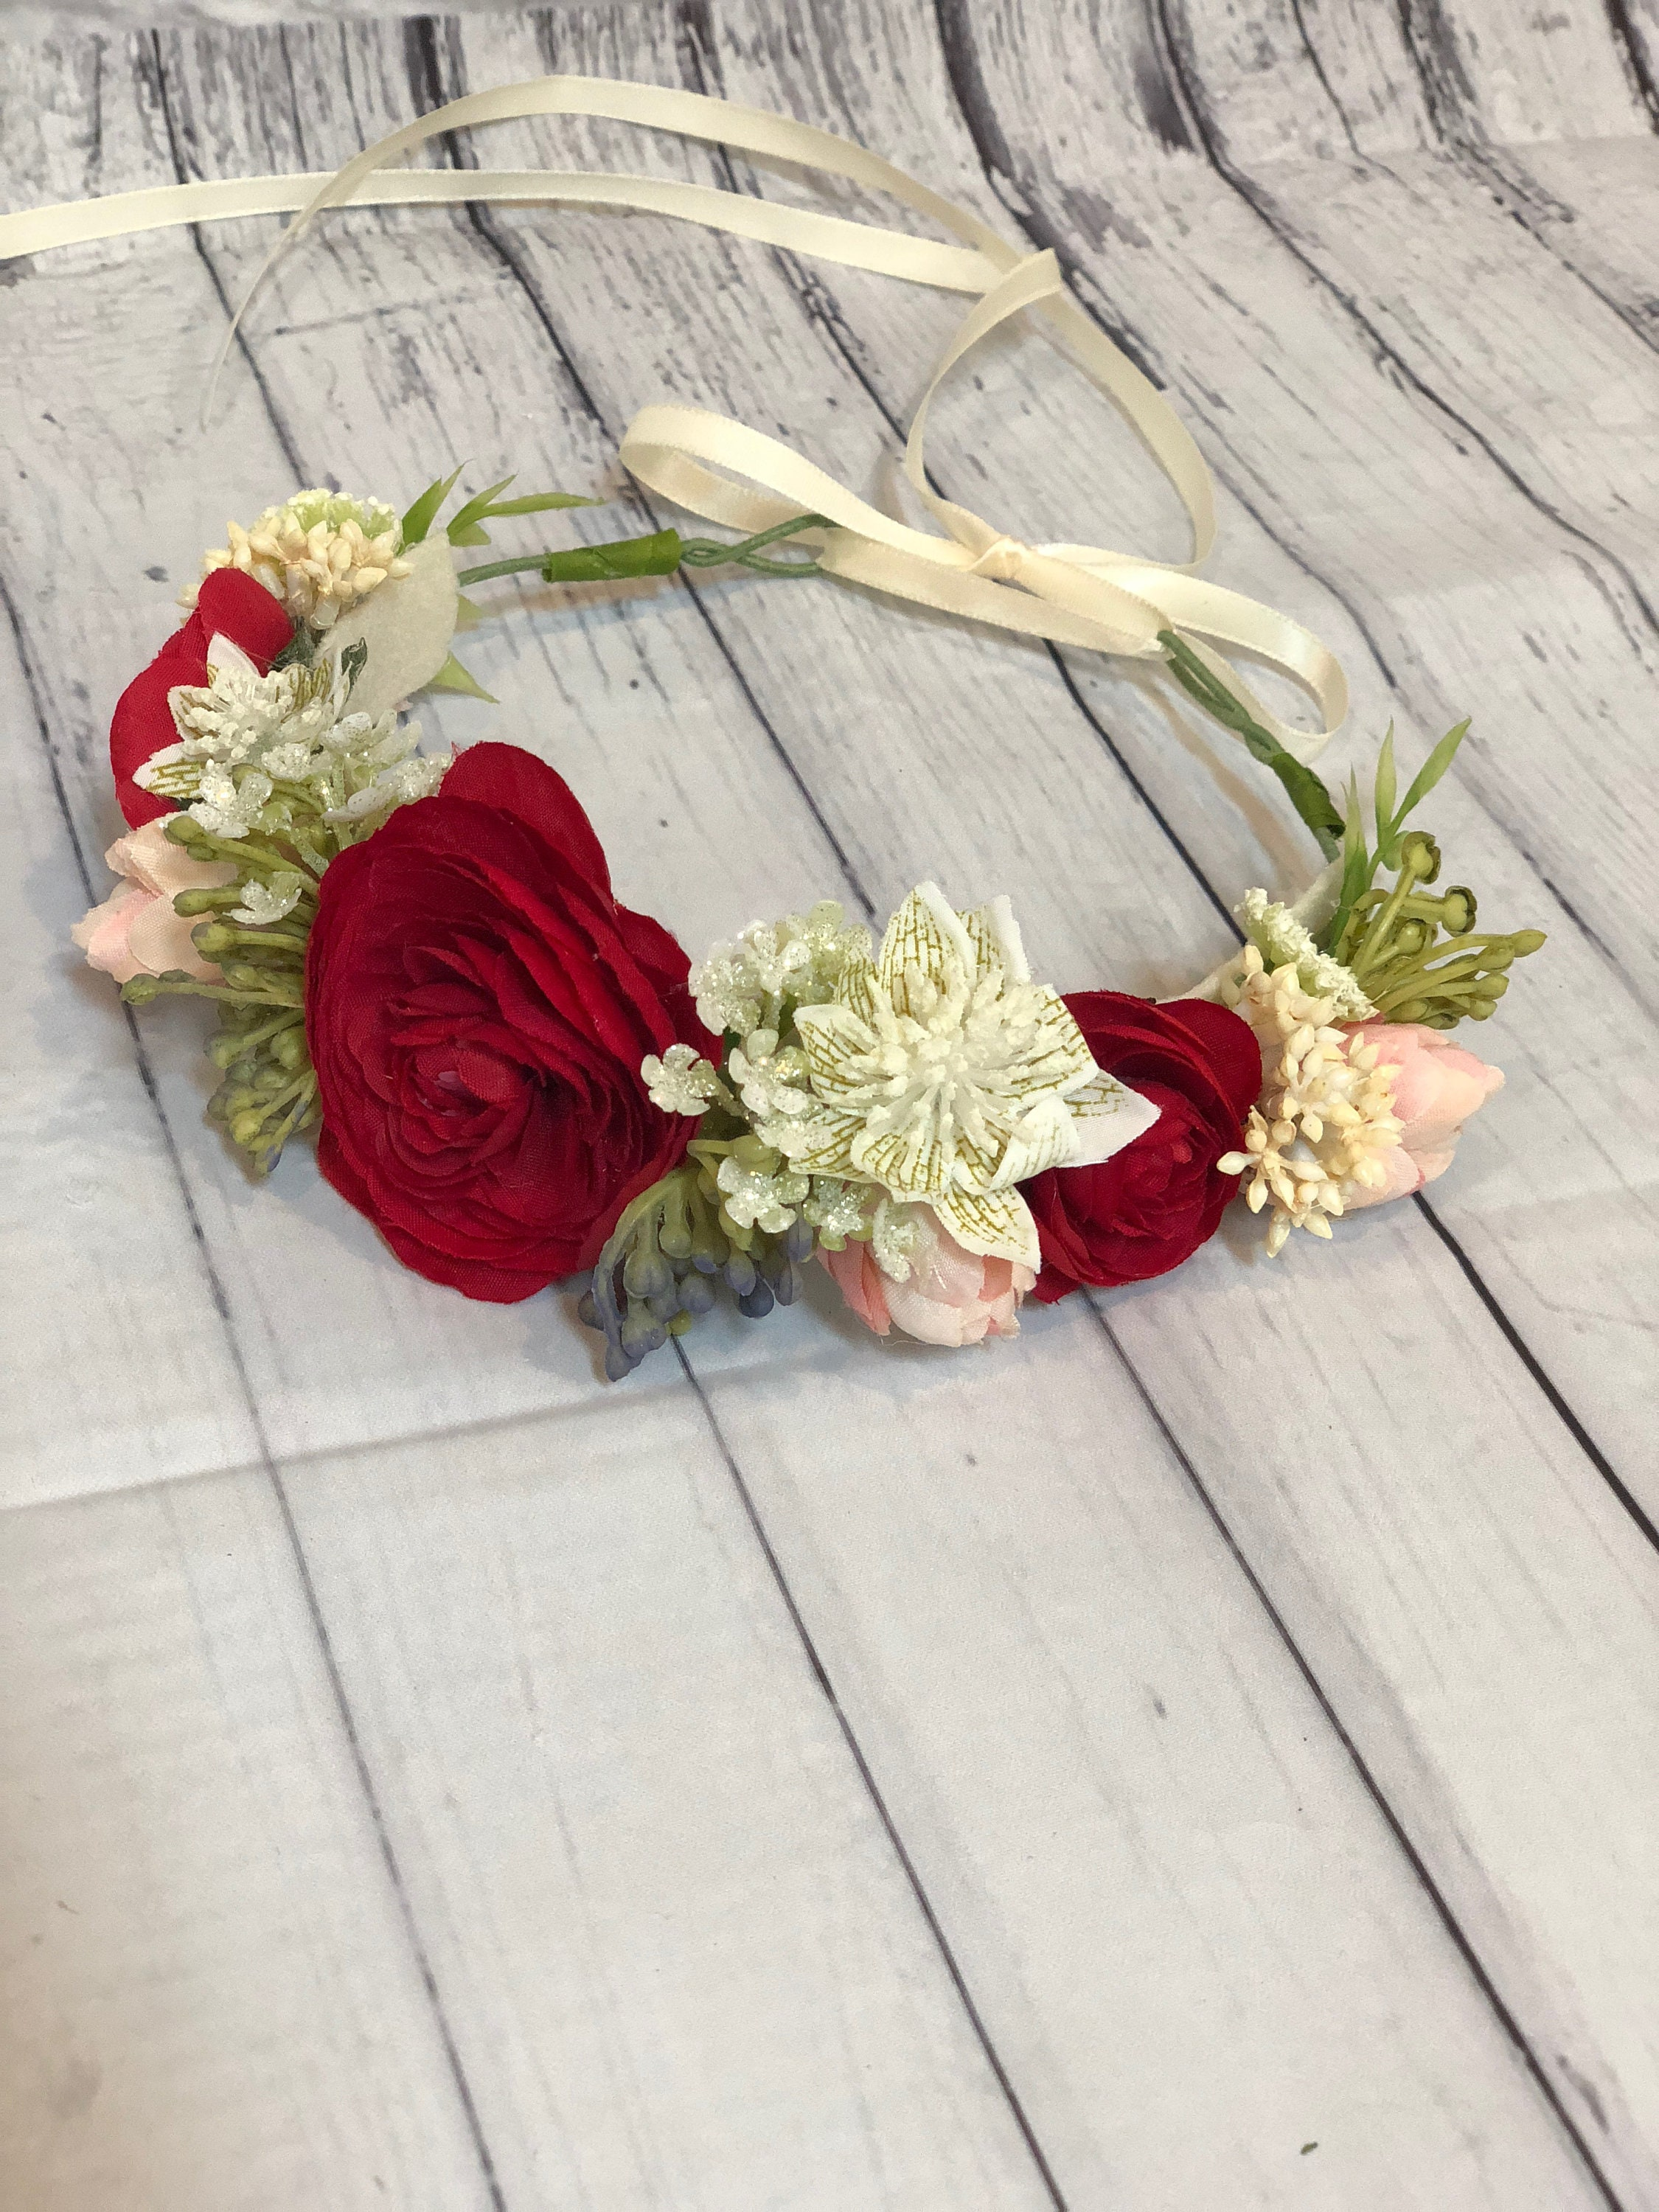 Handmade Babychilds Flower Crownwreath With Red Flowers